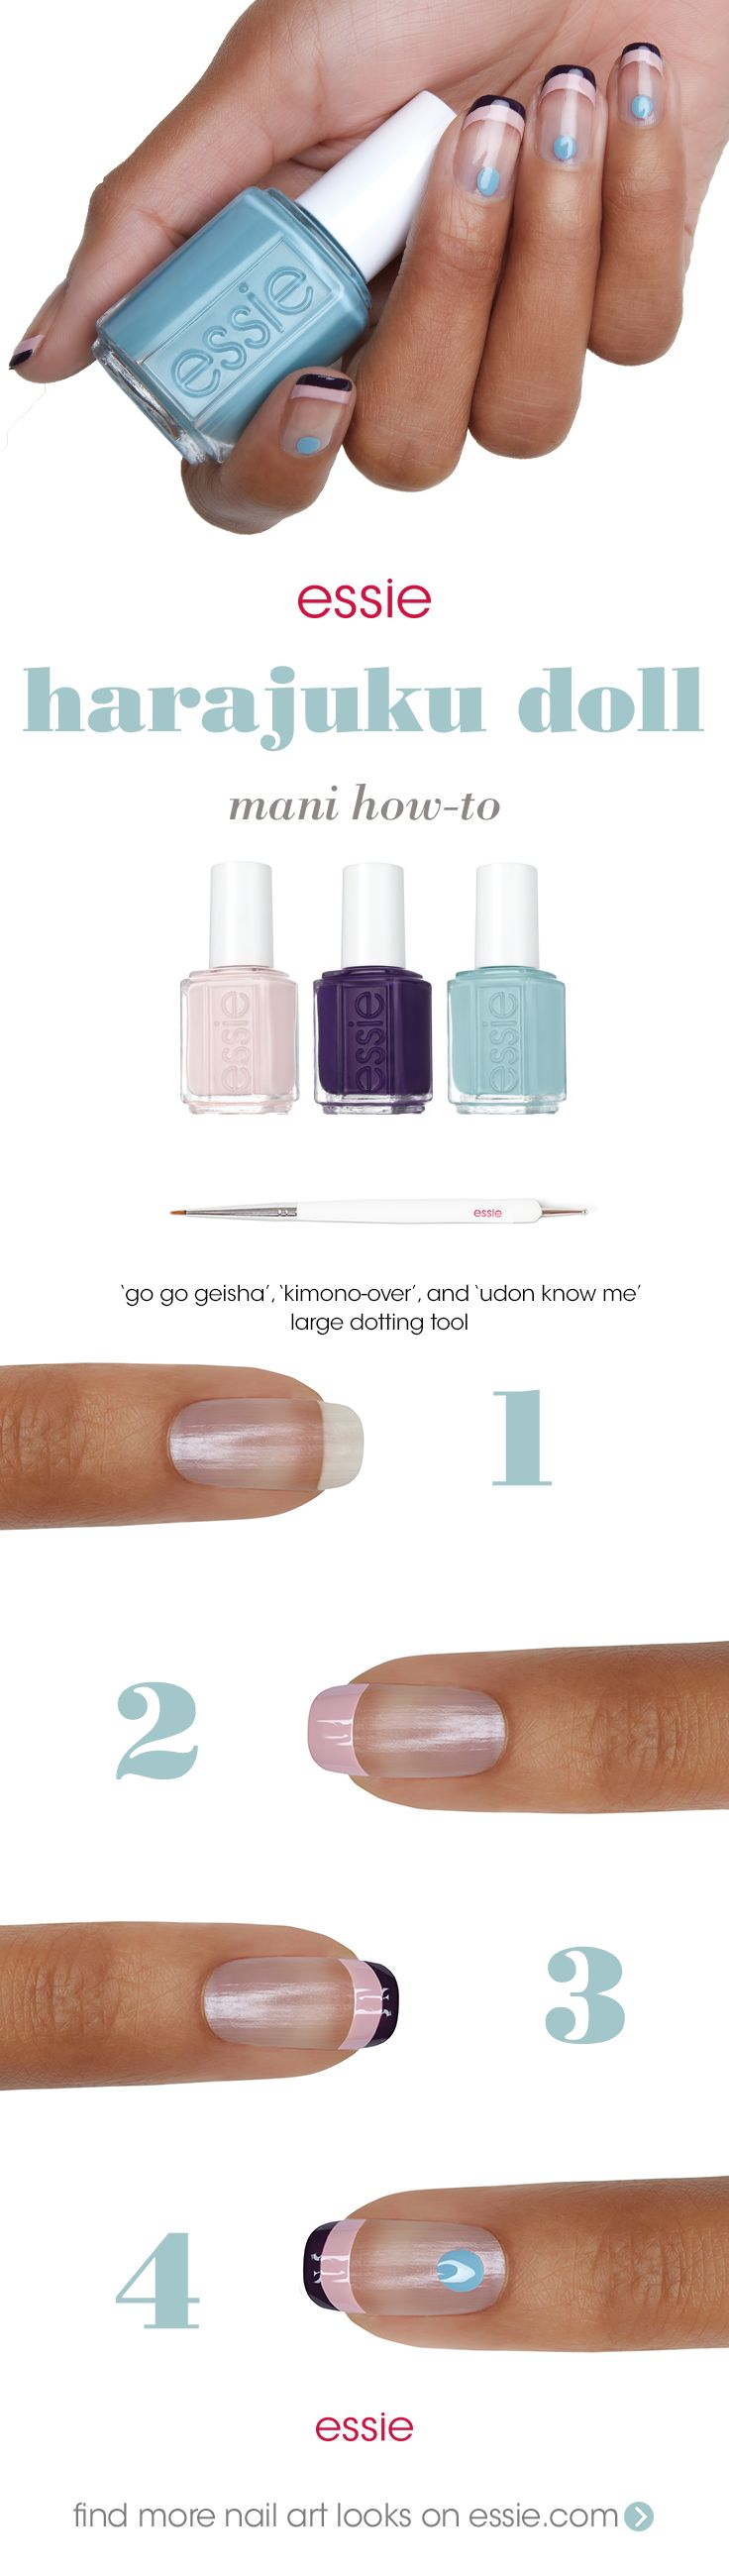 doll up your mani with this 'harajuku doll' take on a French tip  step 1: Apply thin layer of first base base coat. step 2: Using 'go go geisha', create an arc across the free edge of the nail.. step 3: Using 'kimono over', create a thinner arc on top. step 4: Use a large dotting tool to create a dot of 'udon know me' at the base of the nail. seal with essie top coat.